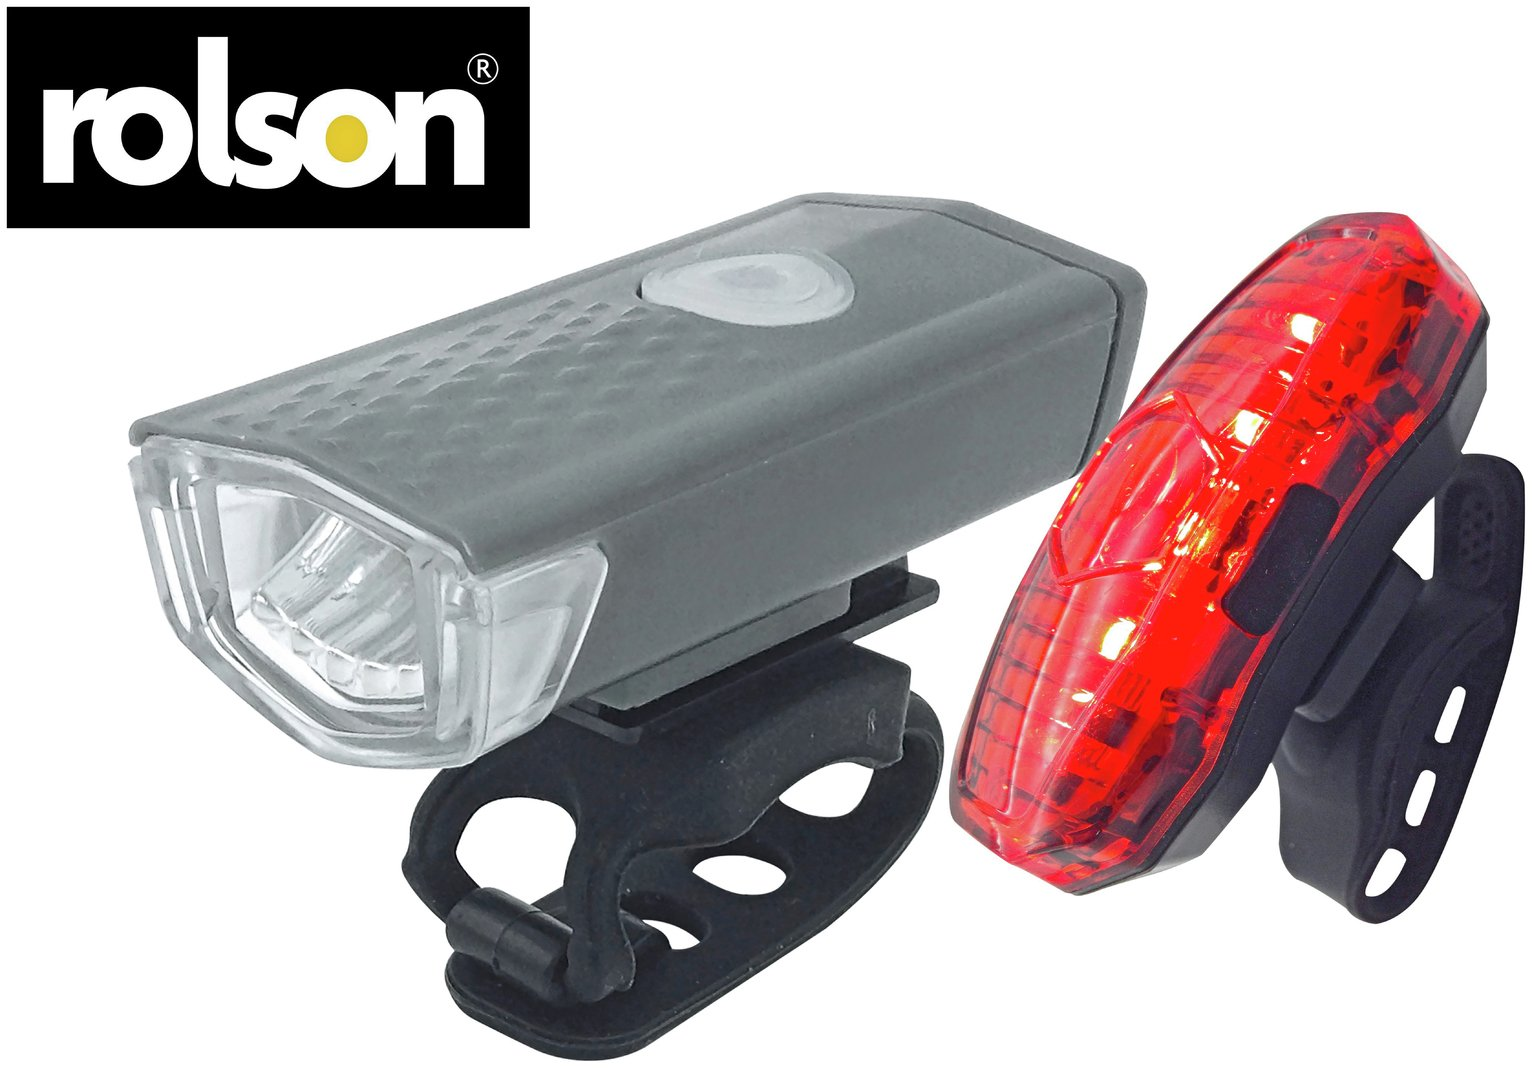 Rolson USB Rechargeable Front and Rear Bike Light Set review